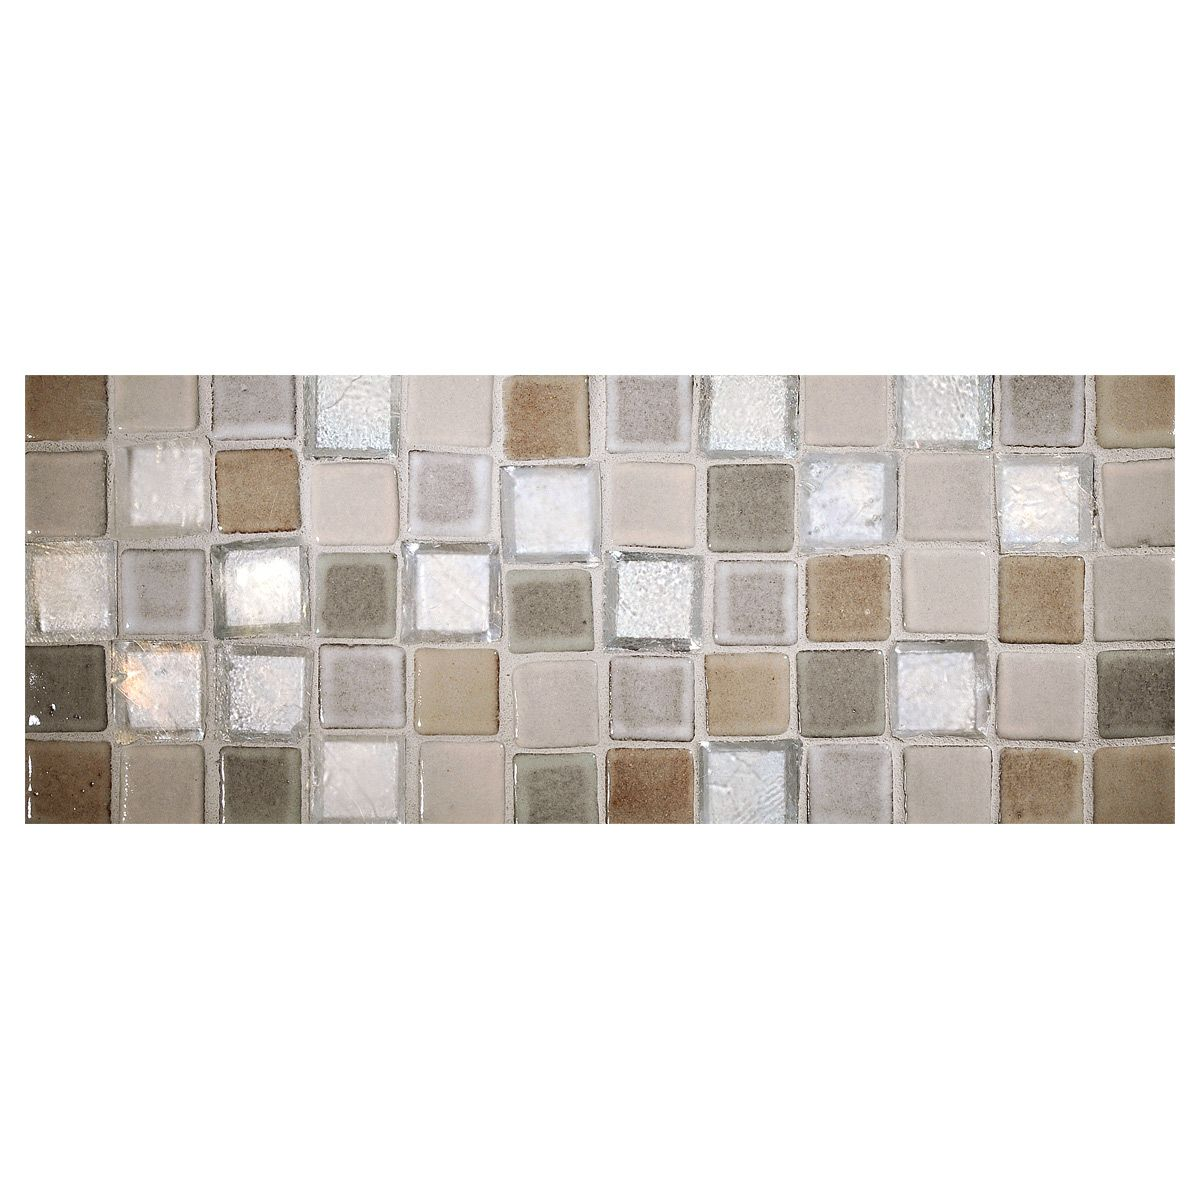 Complete Tile Collection Prodigy Ceramic 1 X 1 Square Mosaic Tile Blend Xii Snow White Bone Ivory Ash Oxy With Images Ceramic Mosaic Tile Mosaic Tiles Ceramics